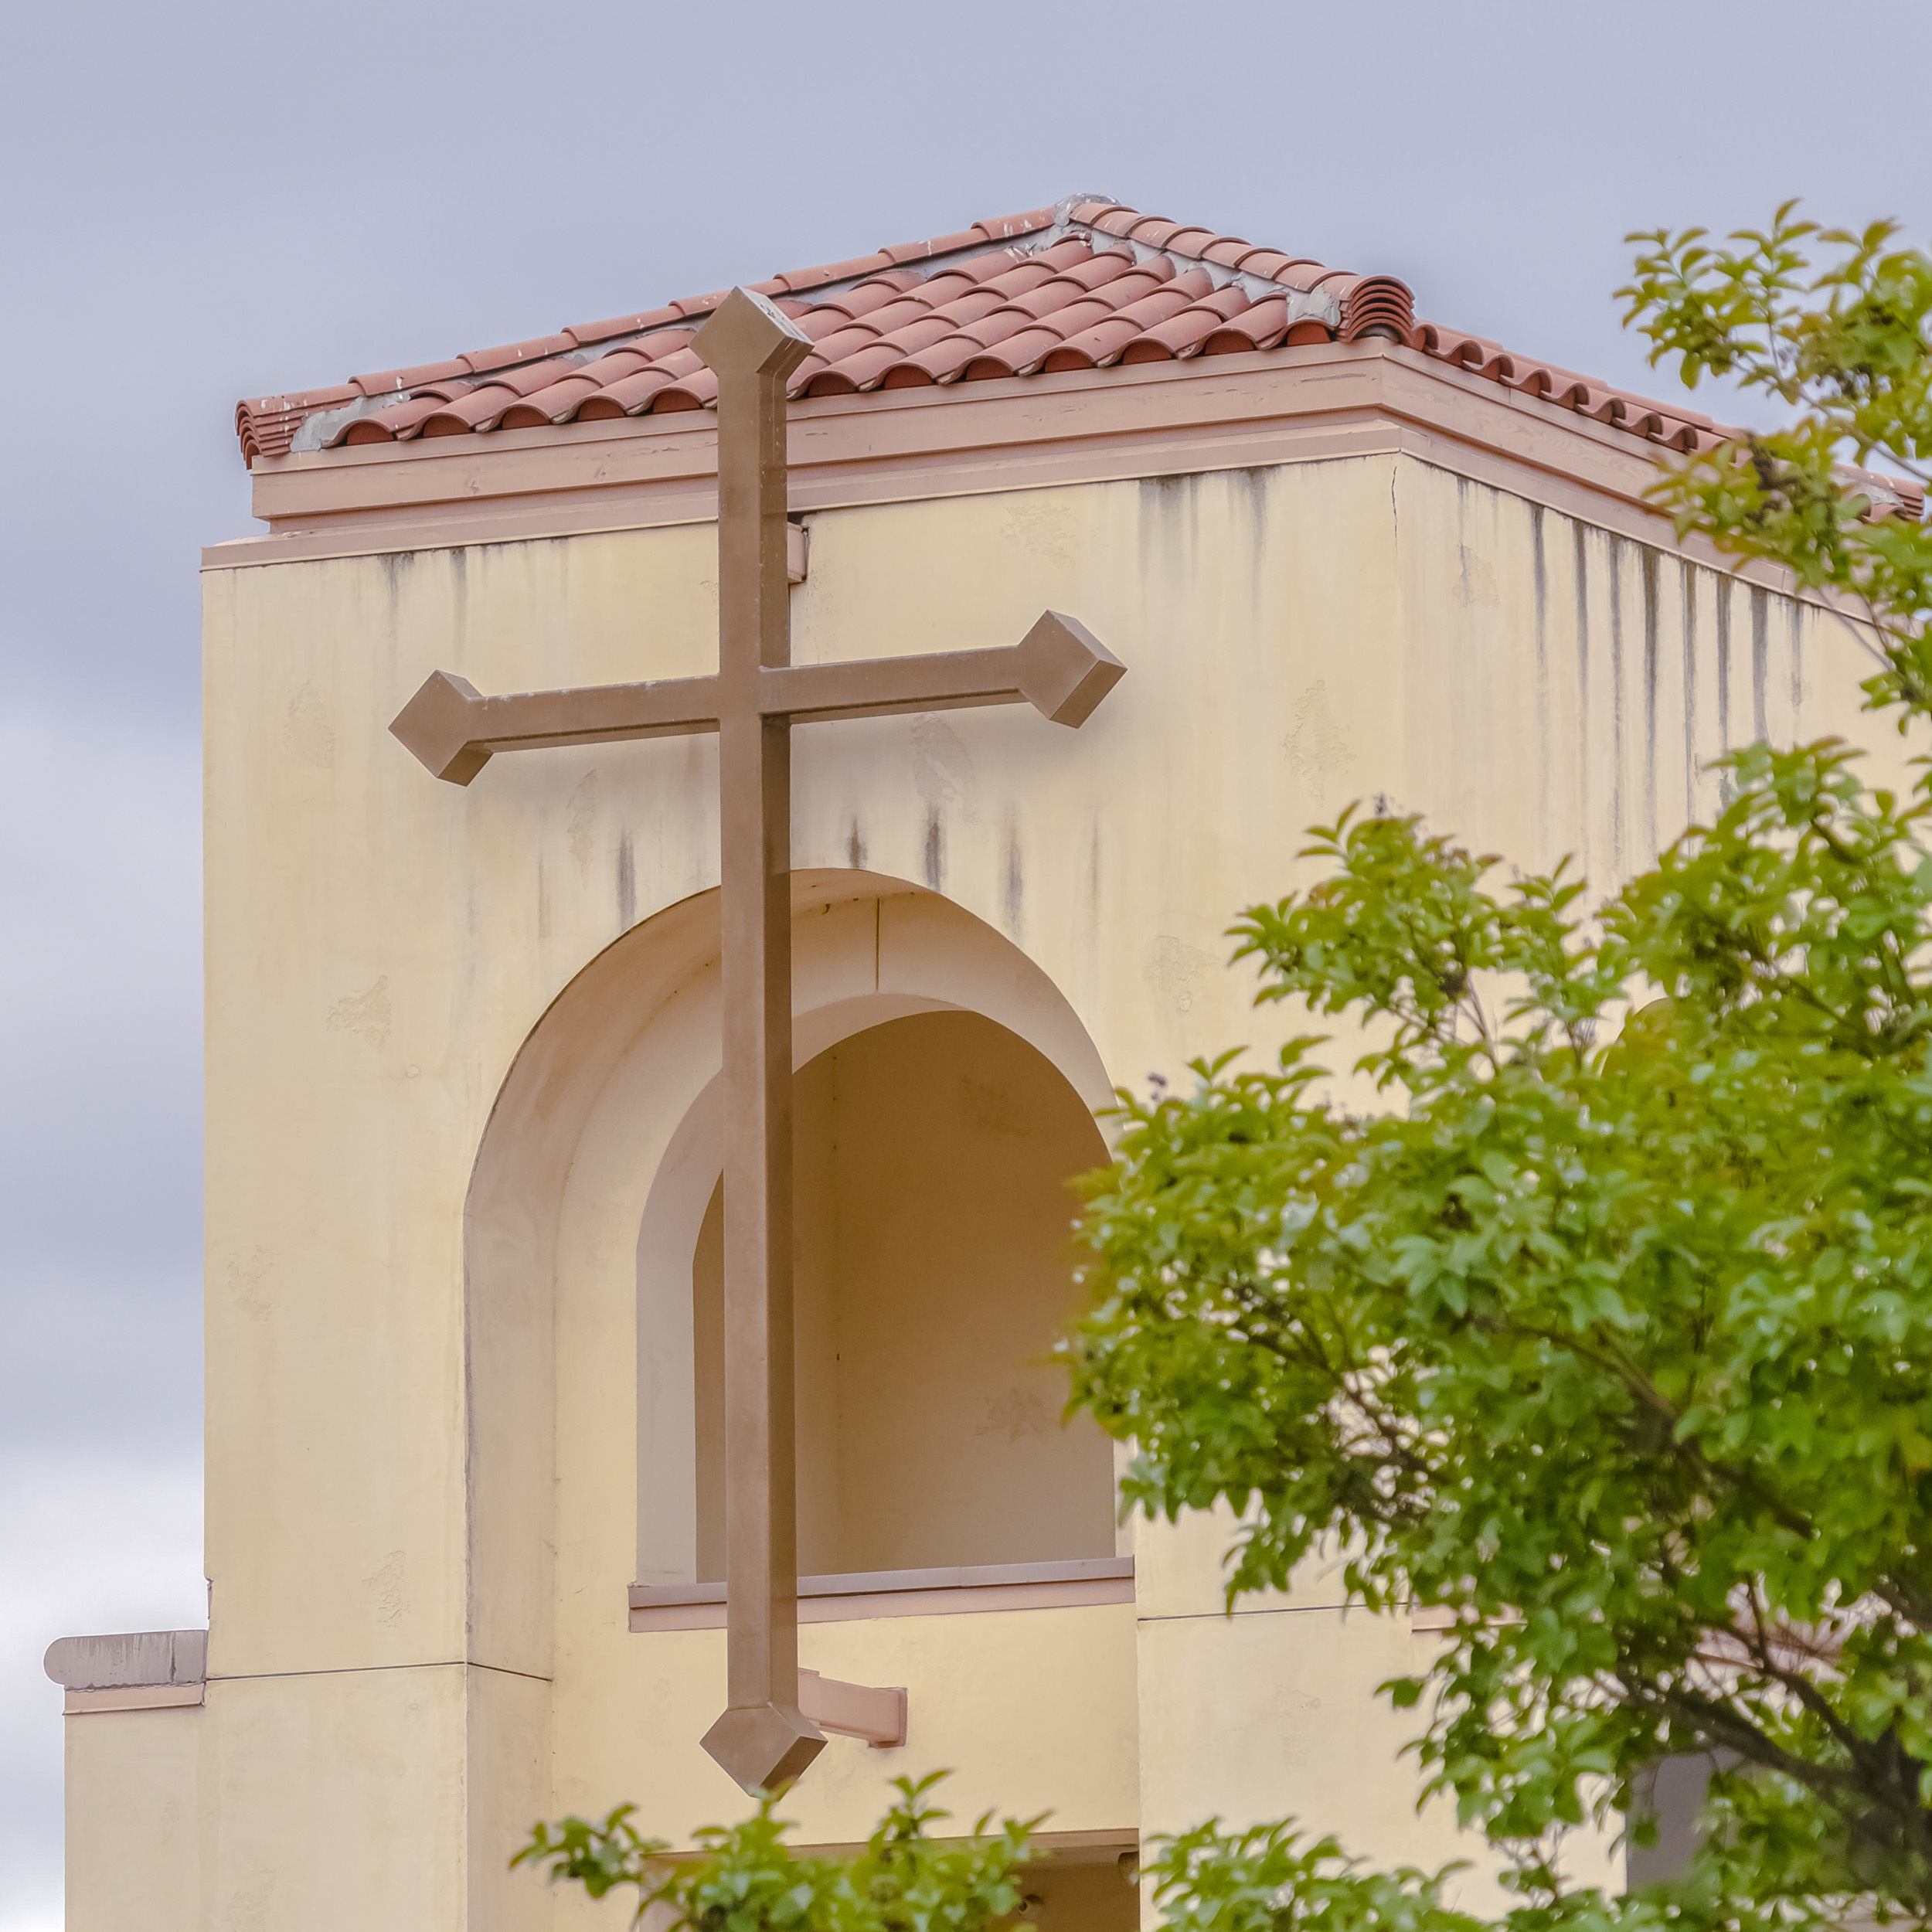 Part of a church building with tile roofing and a large cross.